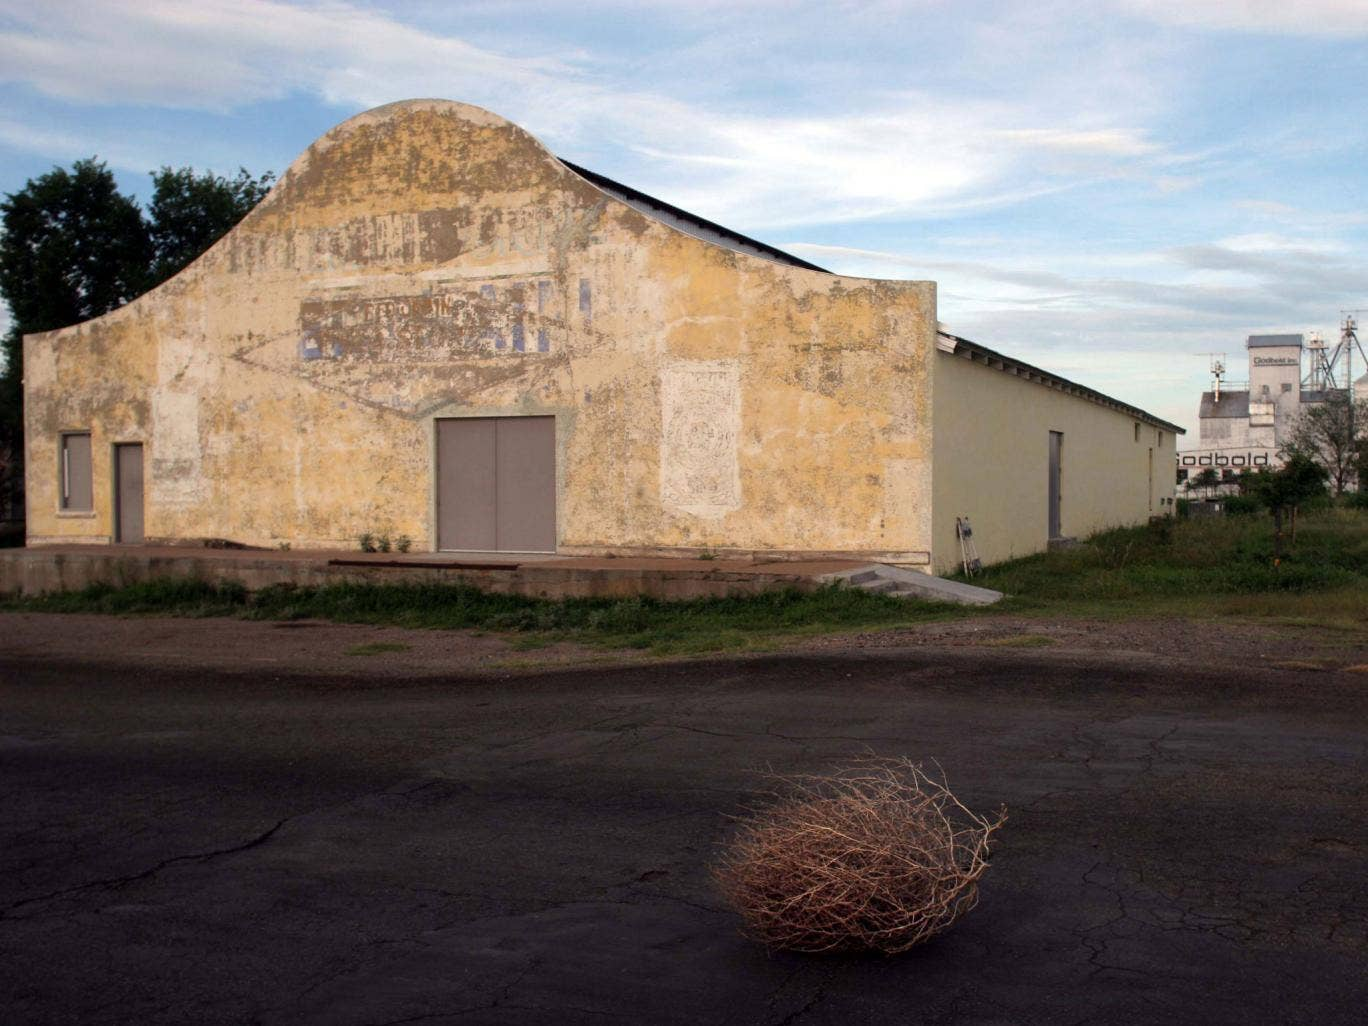 In the never-ending battle against the unrelenting, unforgiving force that is nature, mankind has a new and frightening enemy: Tumbleweed.